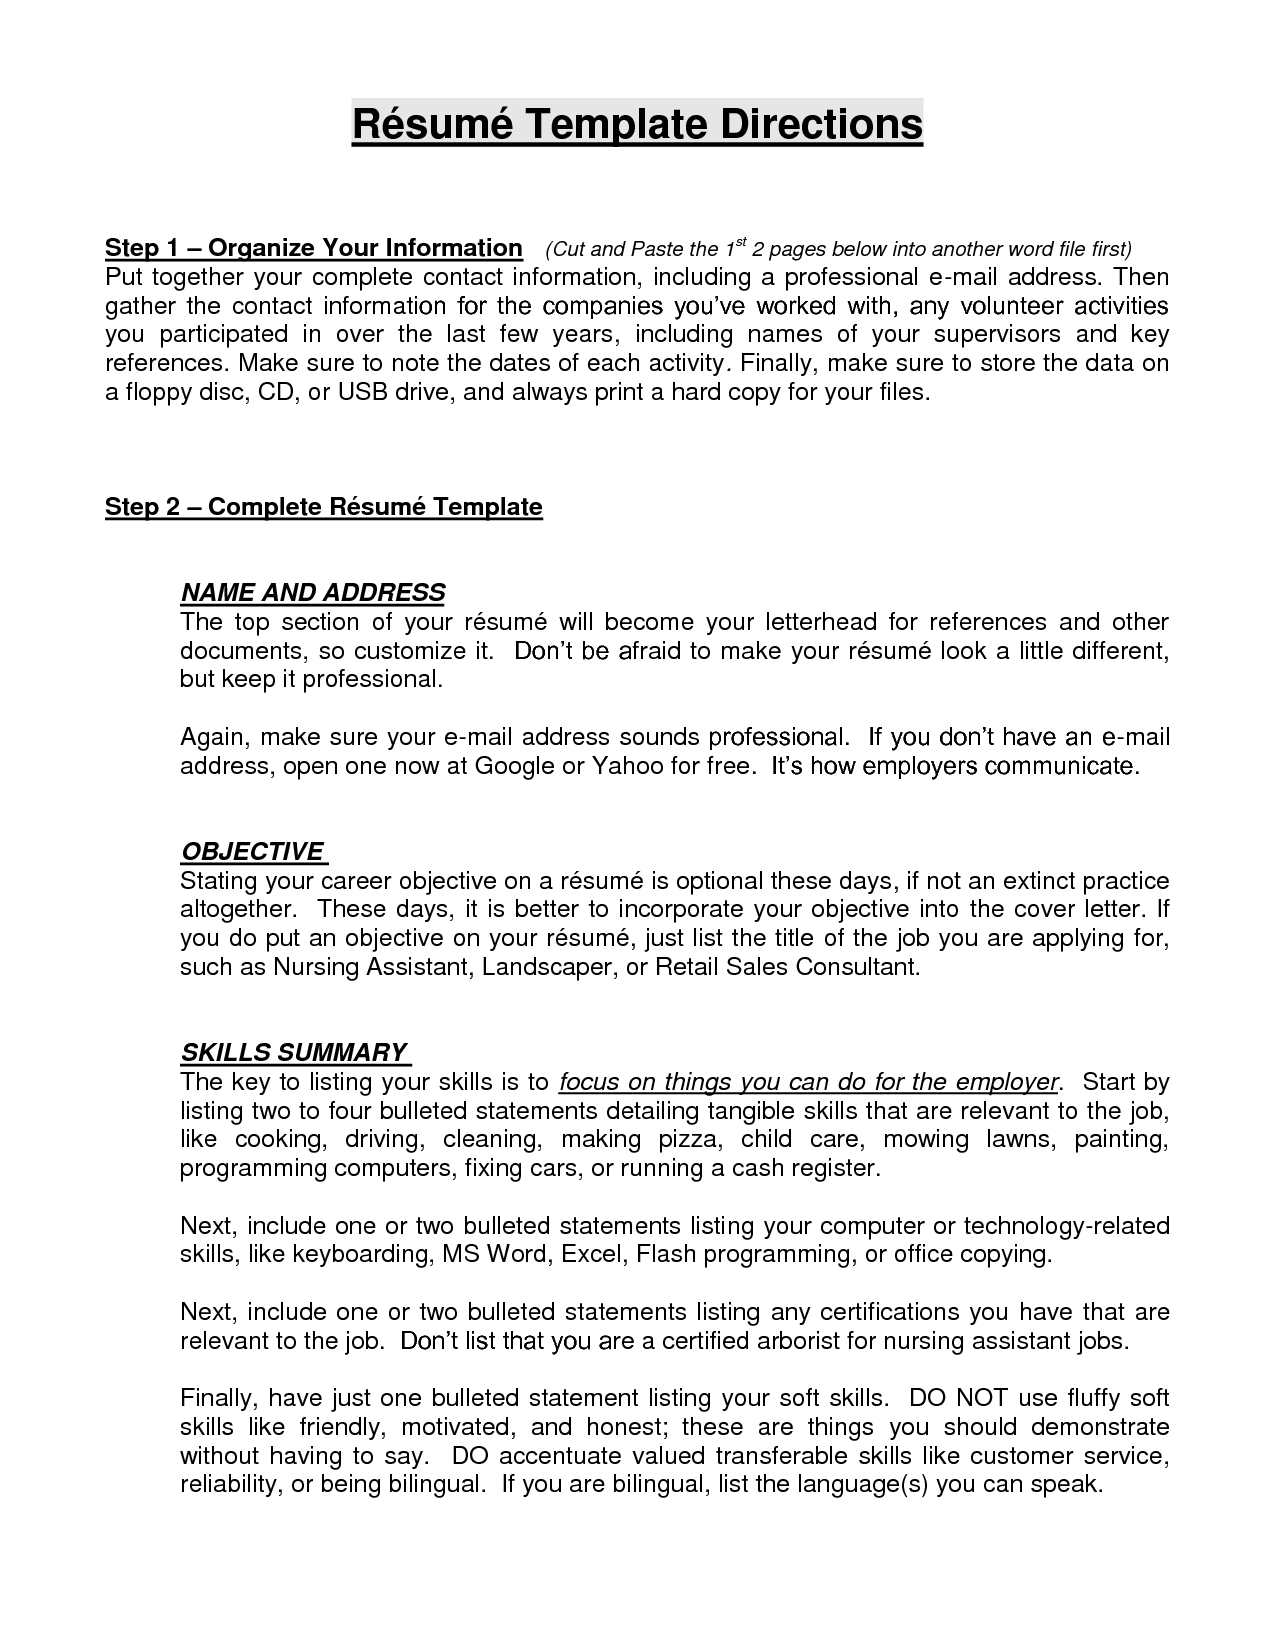 Good Objective Statement For Resume Examples 10 Sample Resume Objective Statements